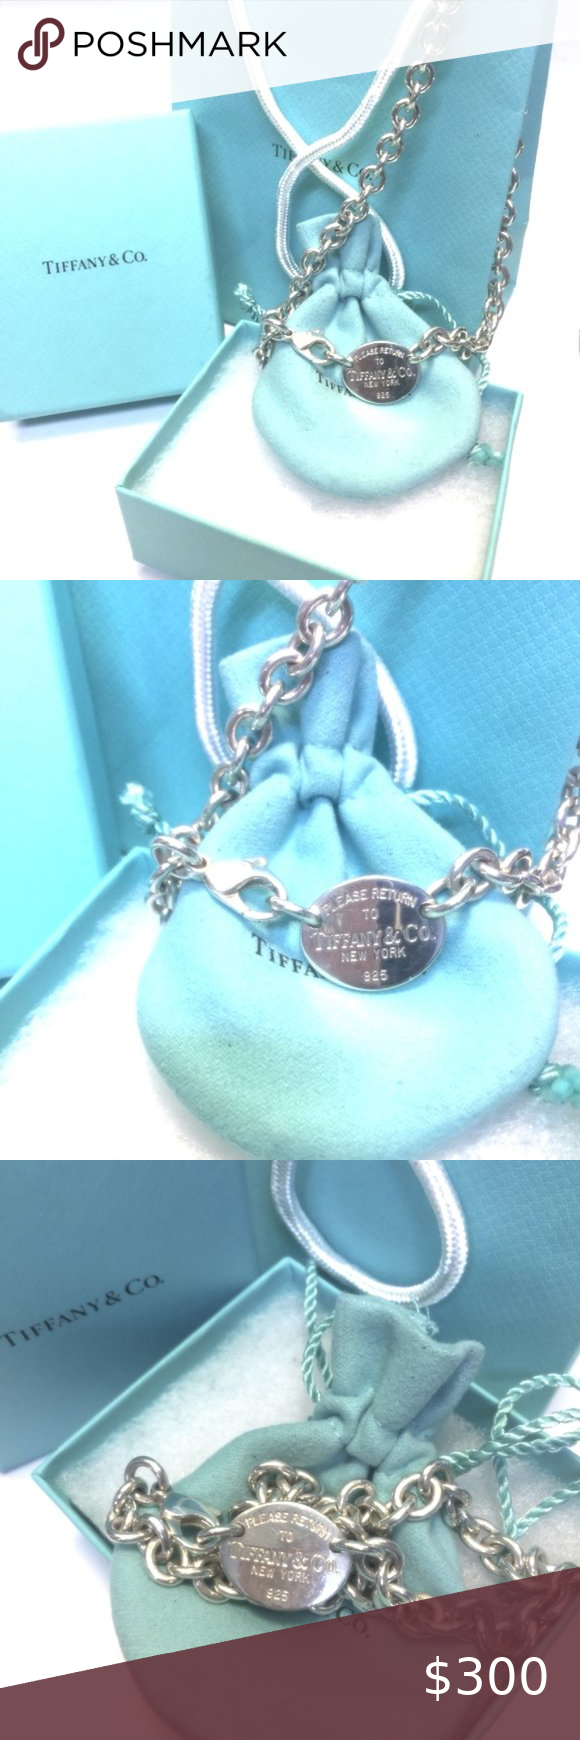 10+ Jewelry that comes in a blue box ideas in 2021